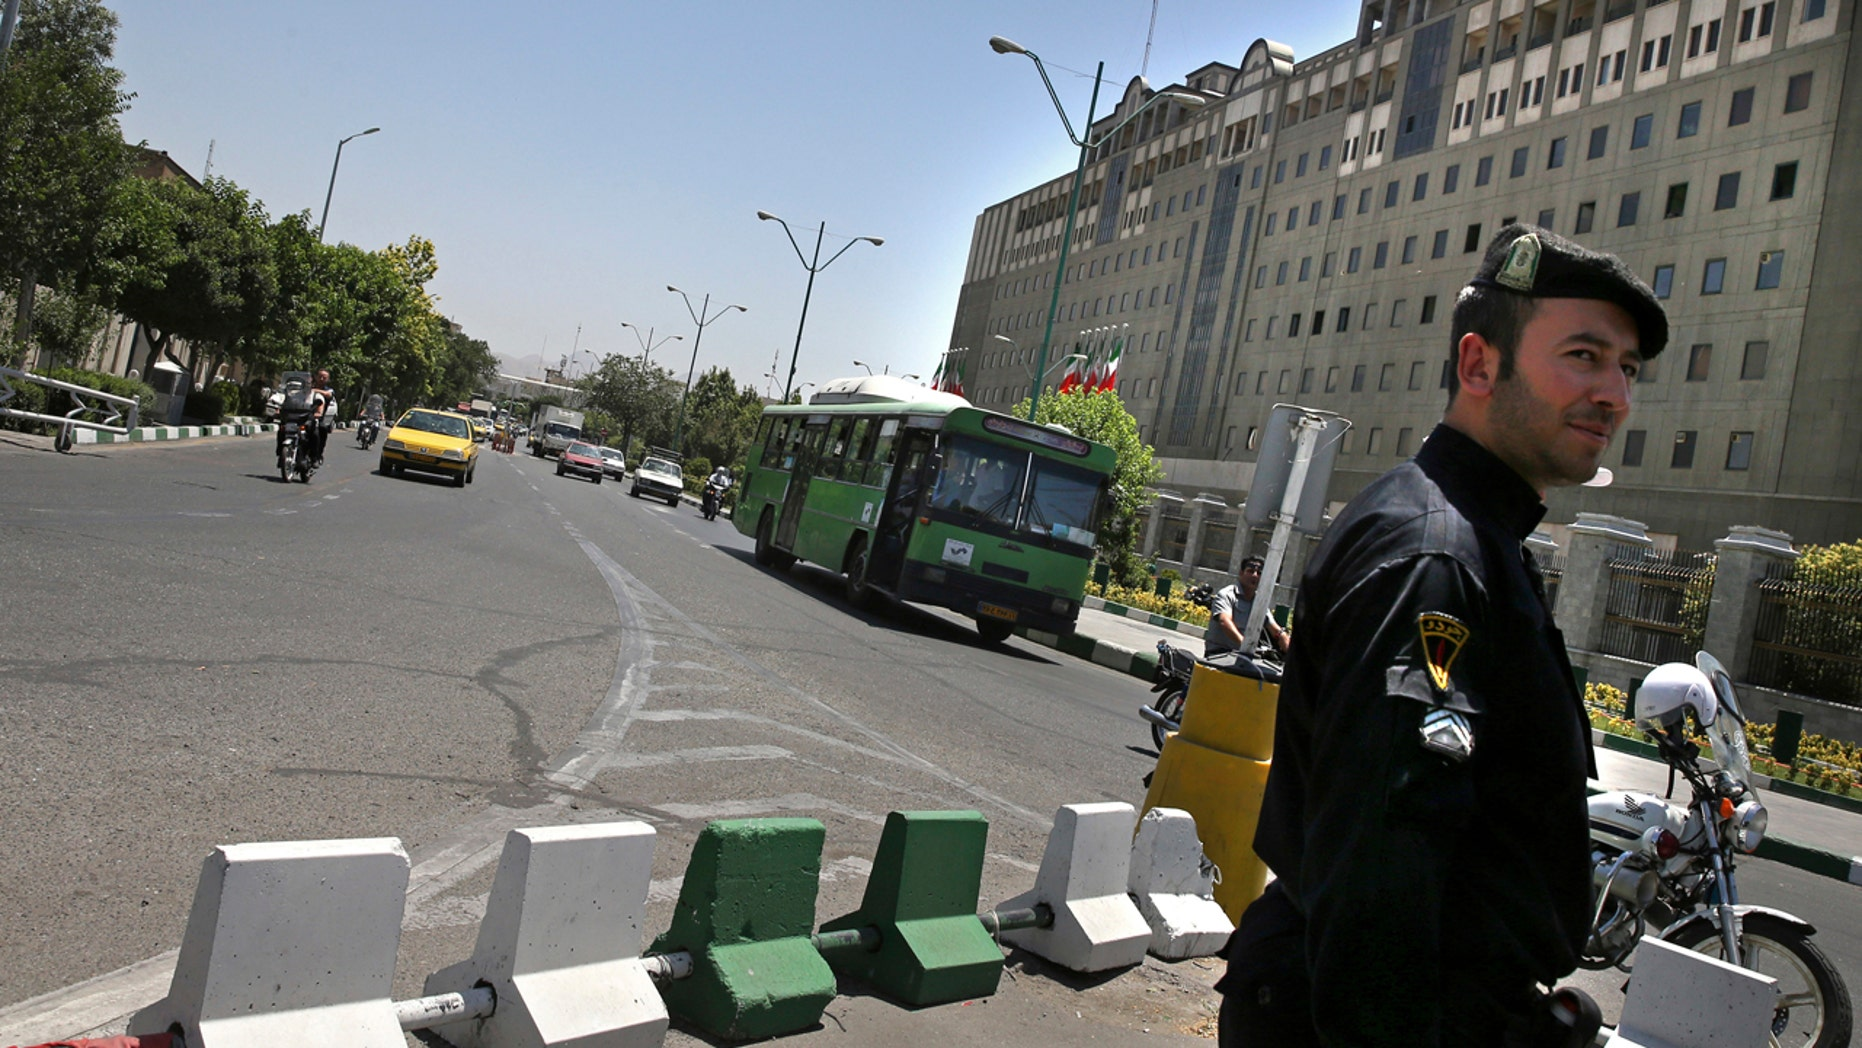 A police officer stands guard as vehicles drive in front of Iran's parliament building in Tehran, Iran, Thursday, May 8, 2017.